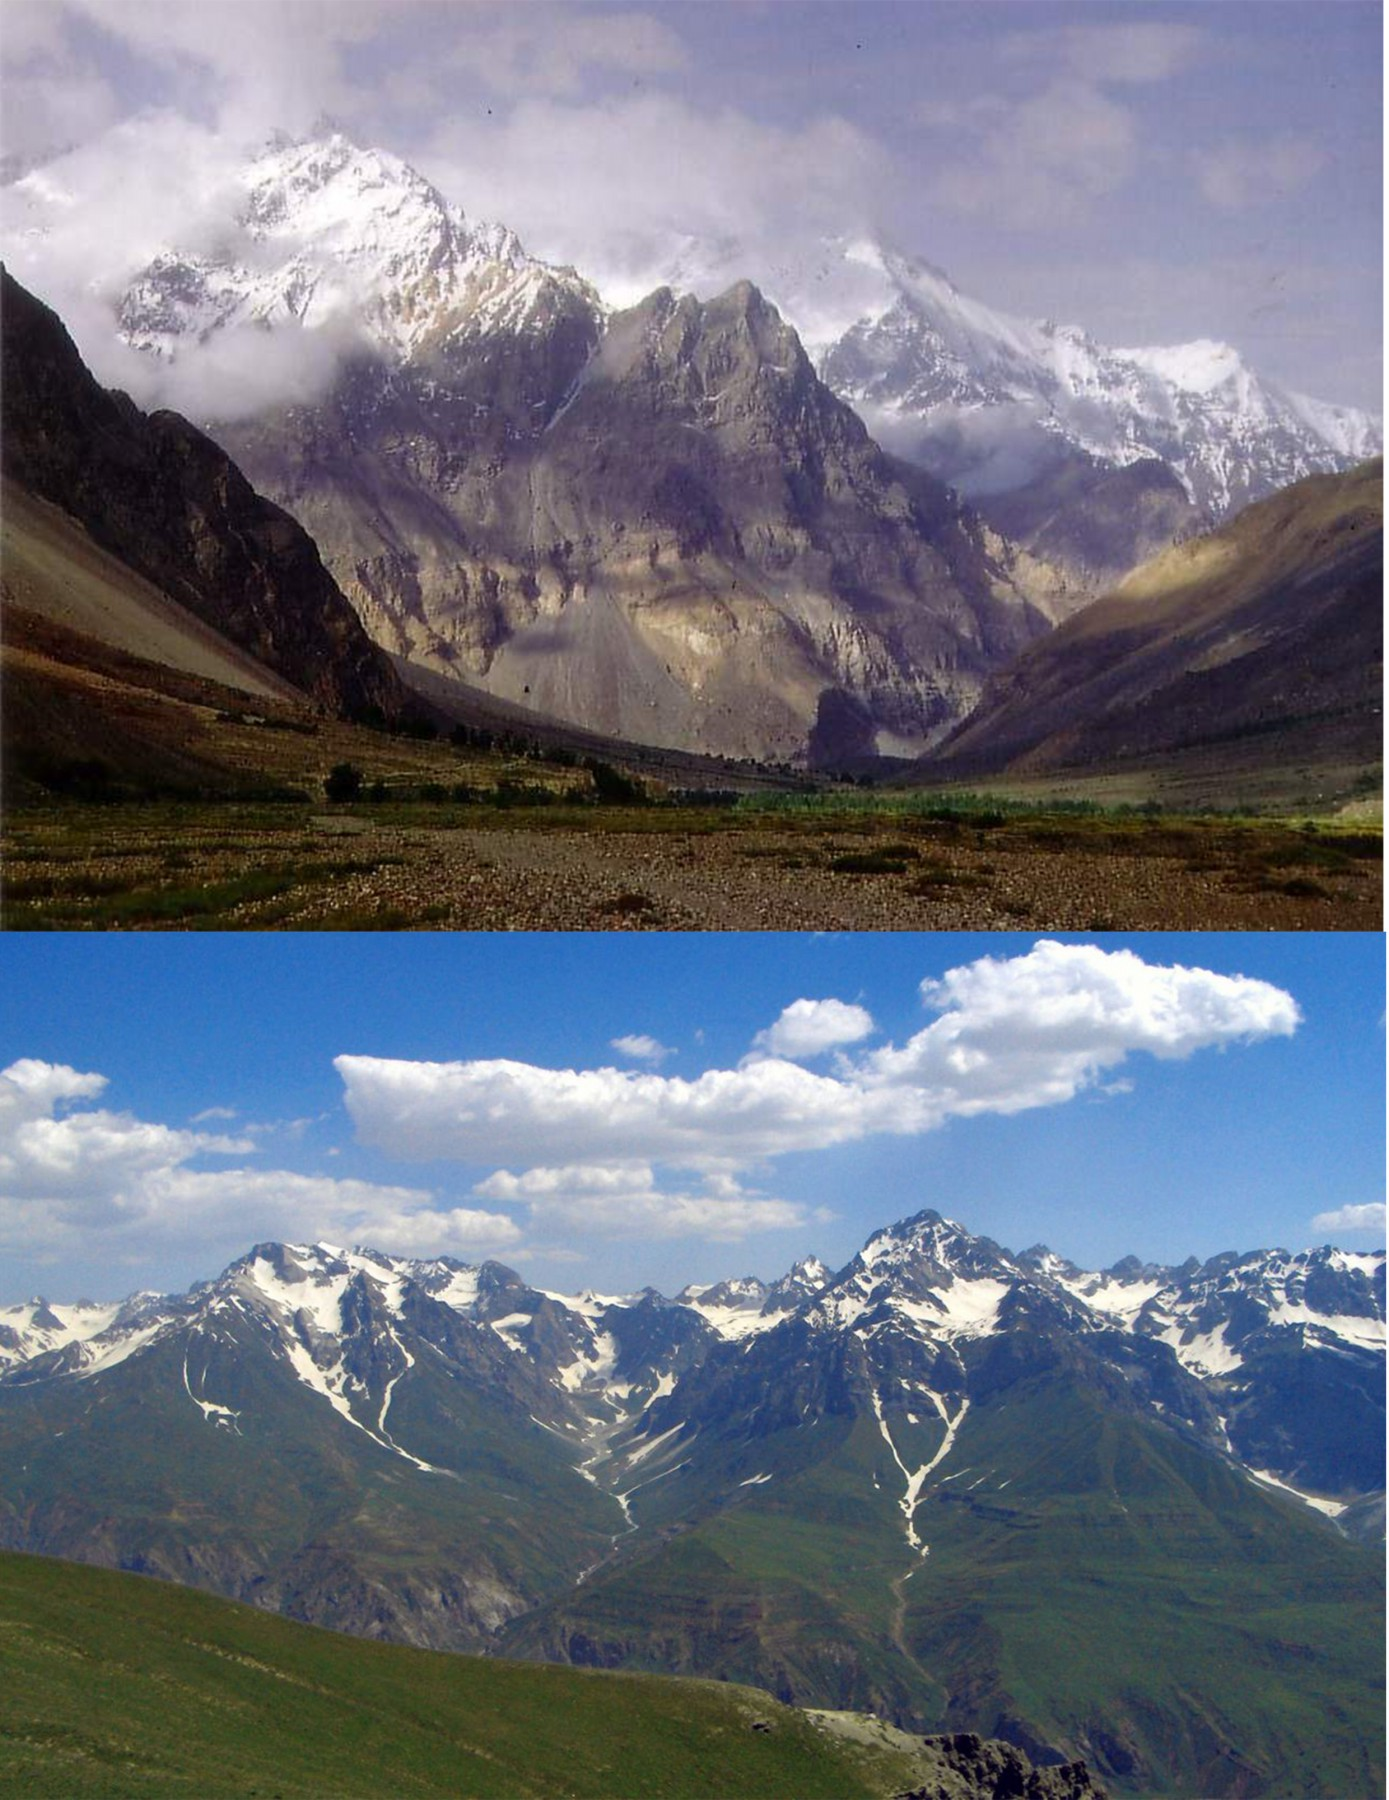 Pamir Mountains - Mountain Range In Central Asia